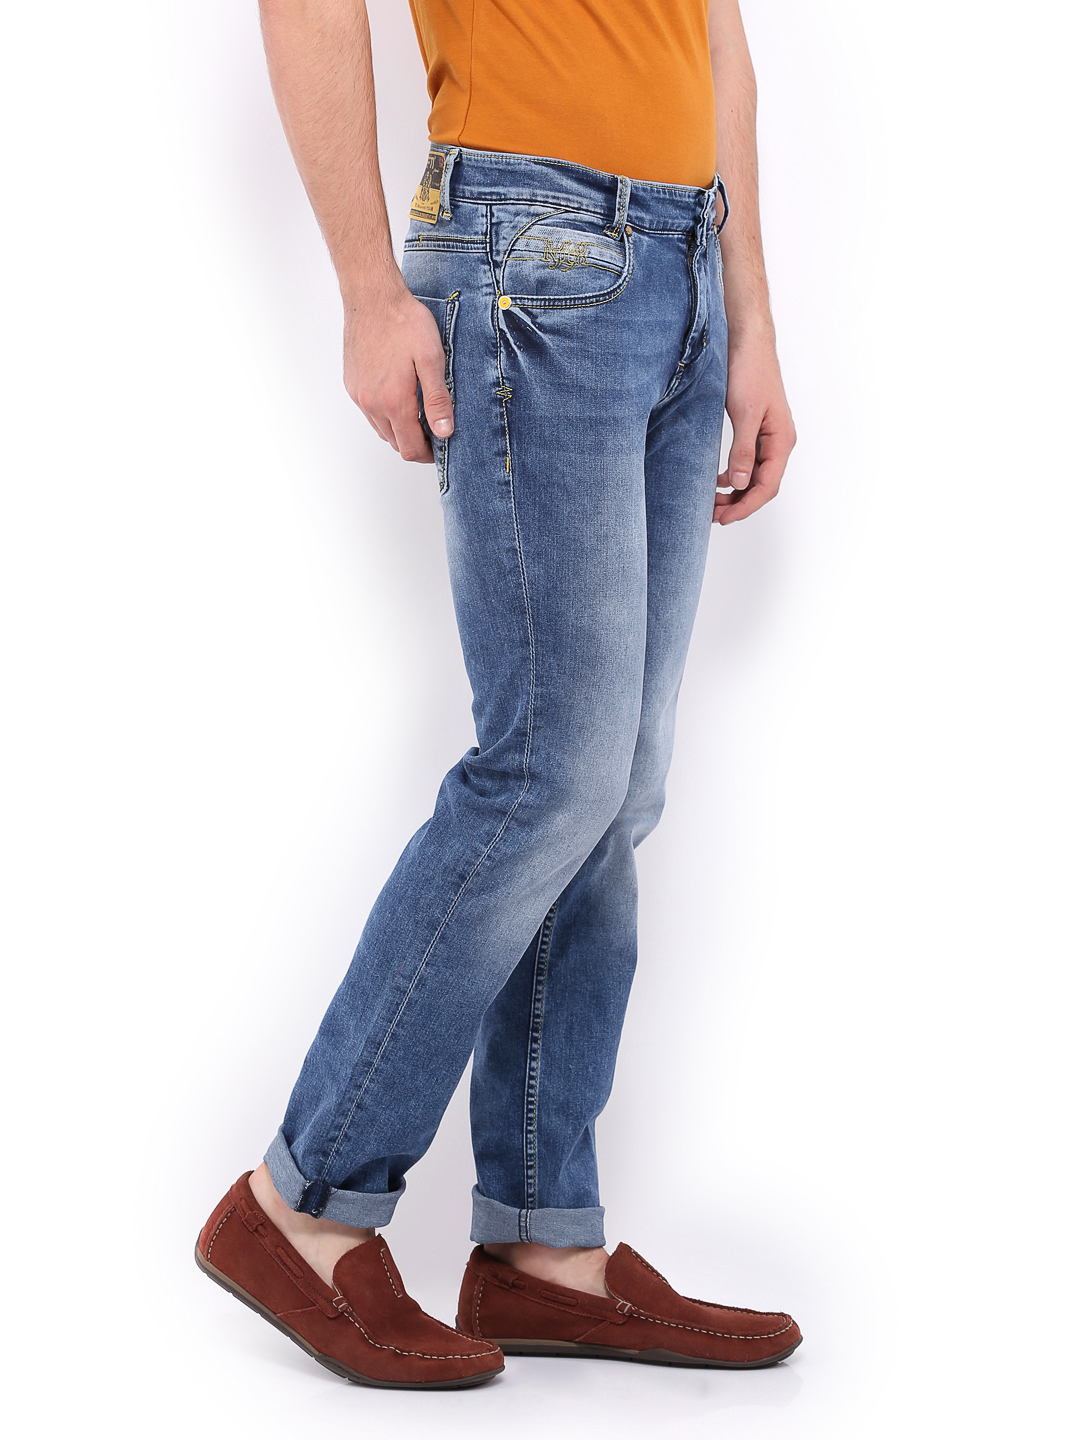 Myntra Mufti Men Blue Narrow Fit Jeans 399617 | Buy Myntra Mufti Jeans at best price online. All ...